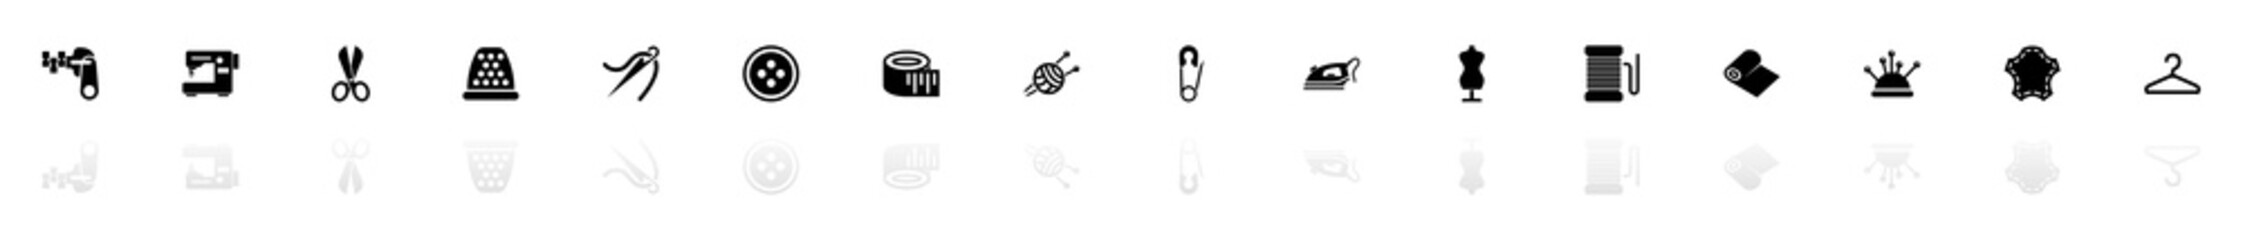 Tailoring icons - Black horizontal Illustration symbol on White Background with a mirror Shadow reflection. Flat Vector Icon.